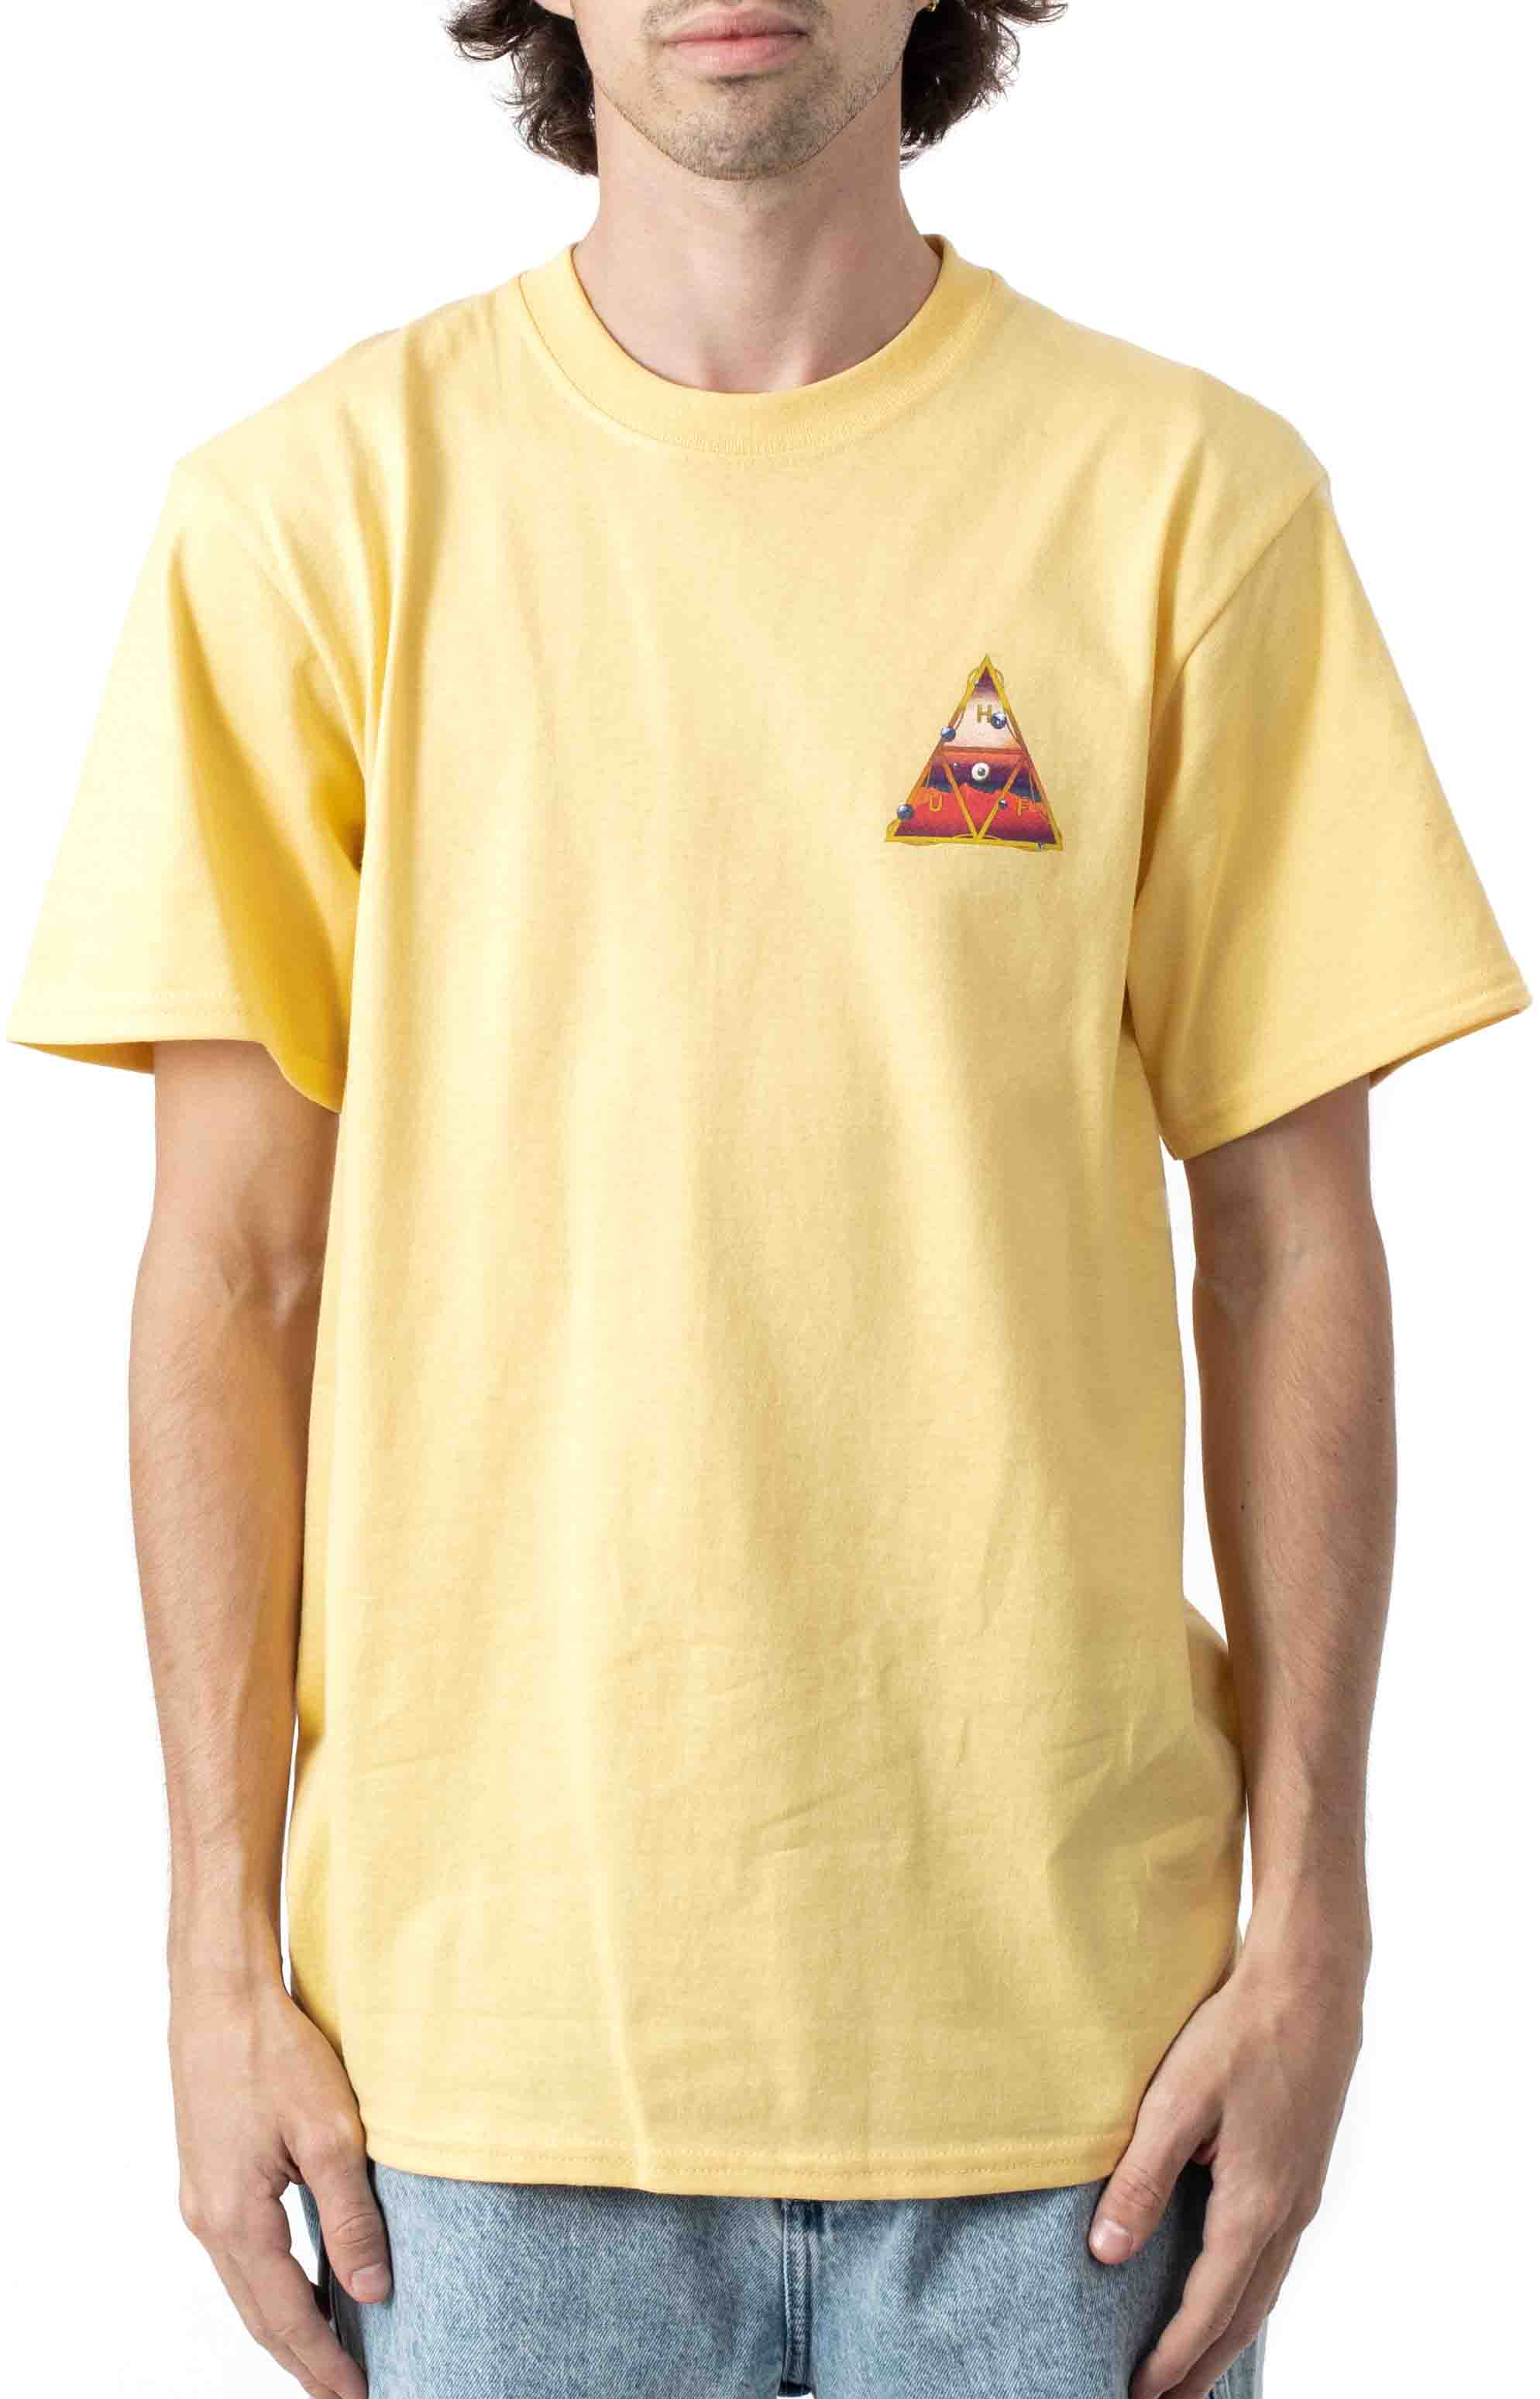 Altered State TT T-Shirt - Washed Yellow